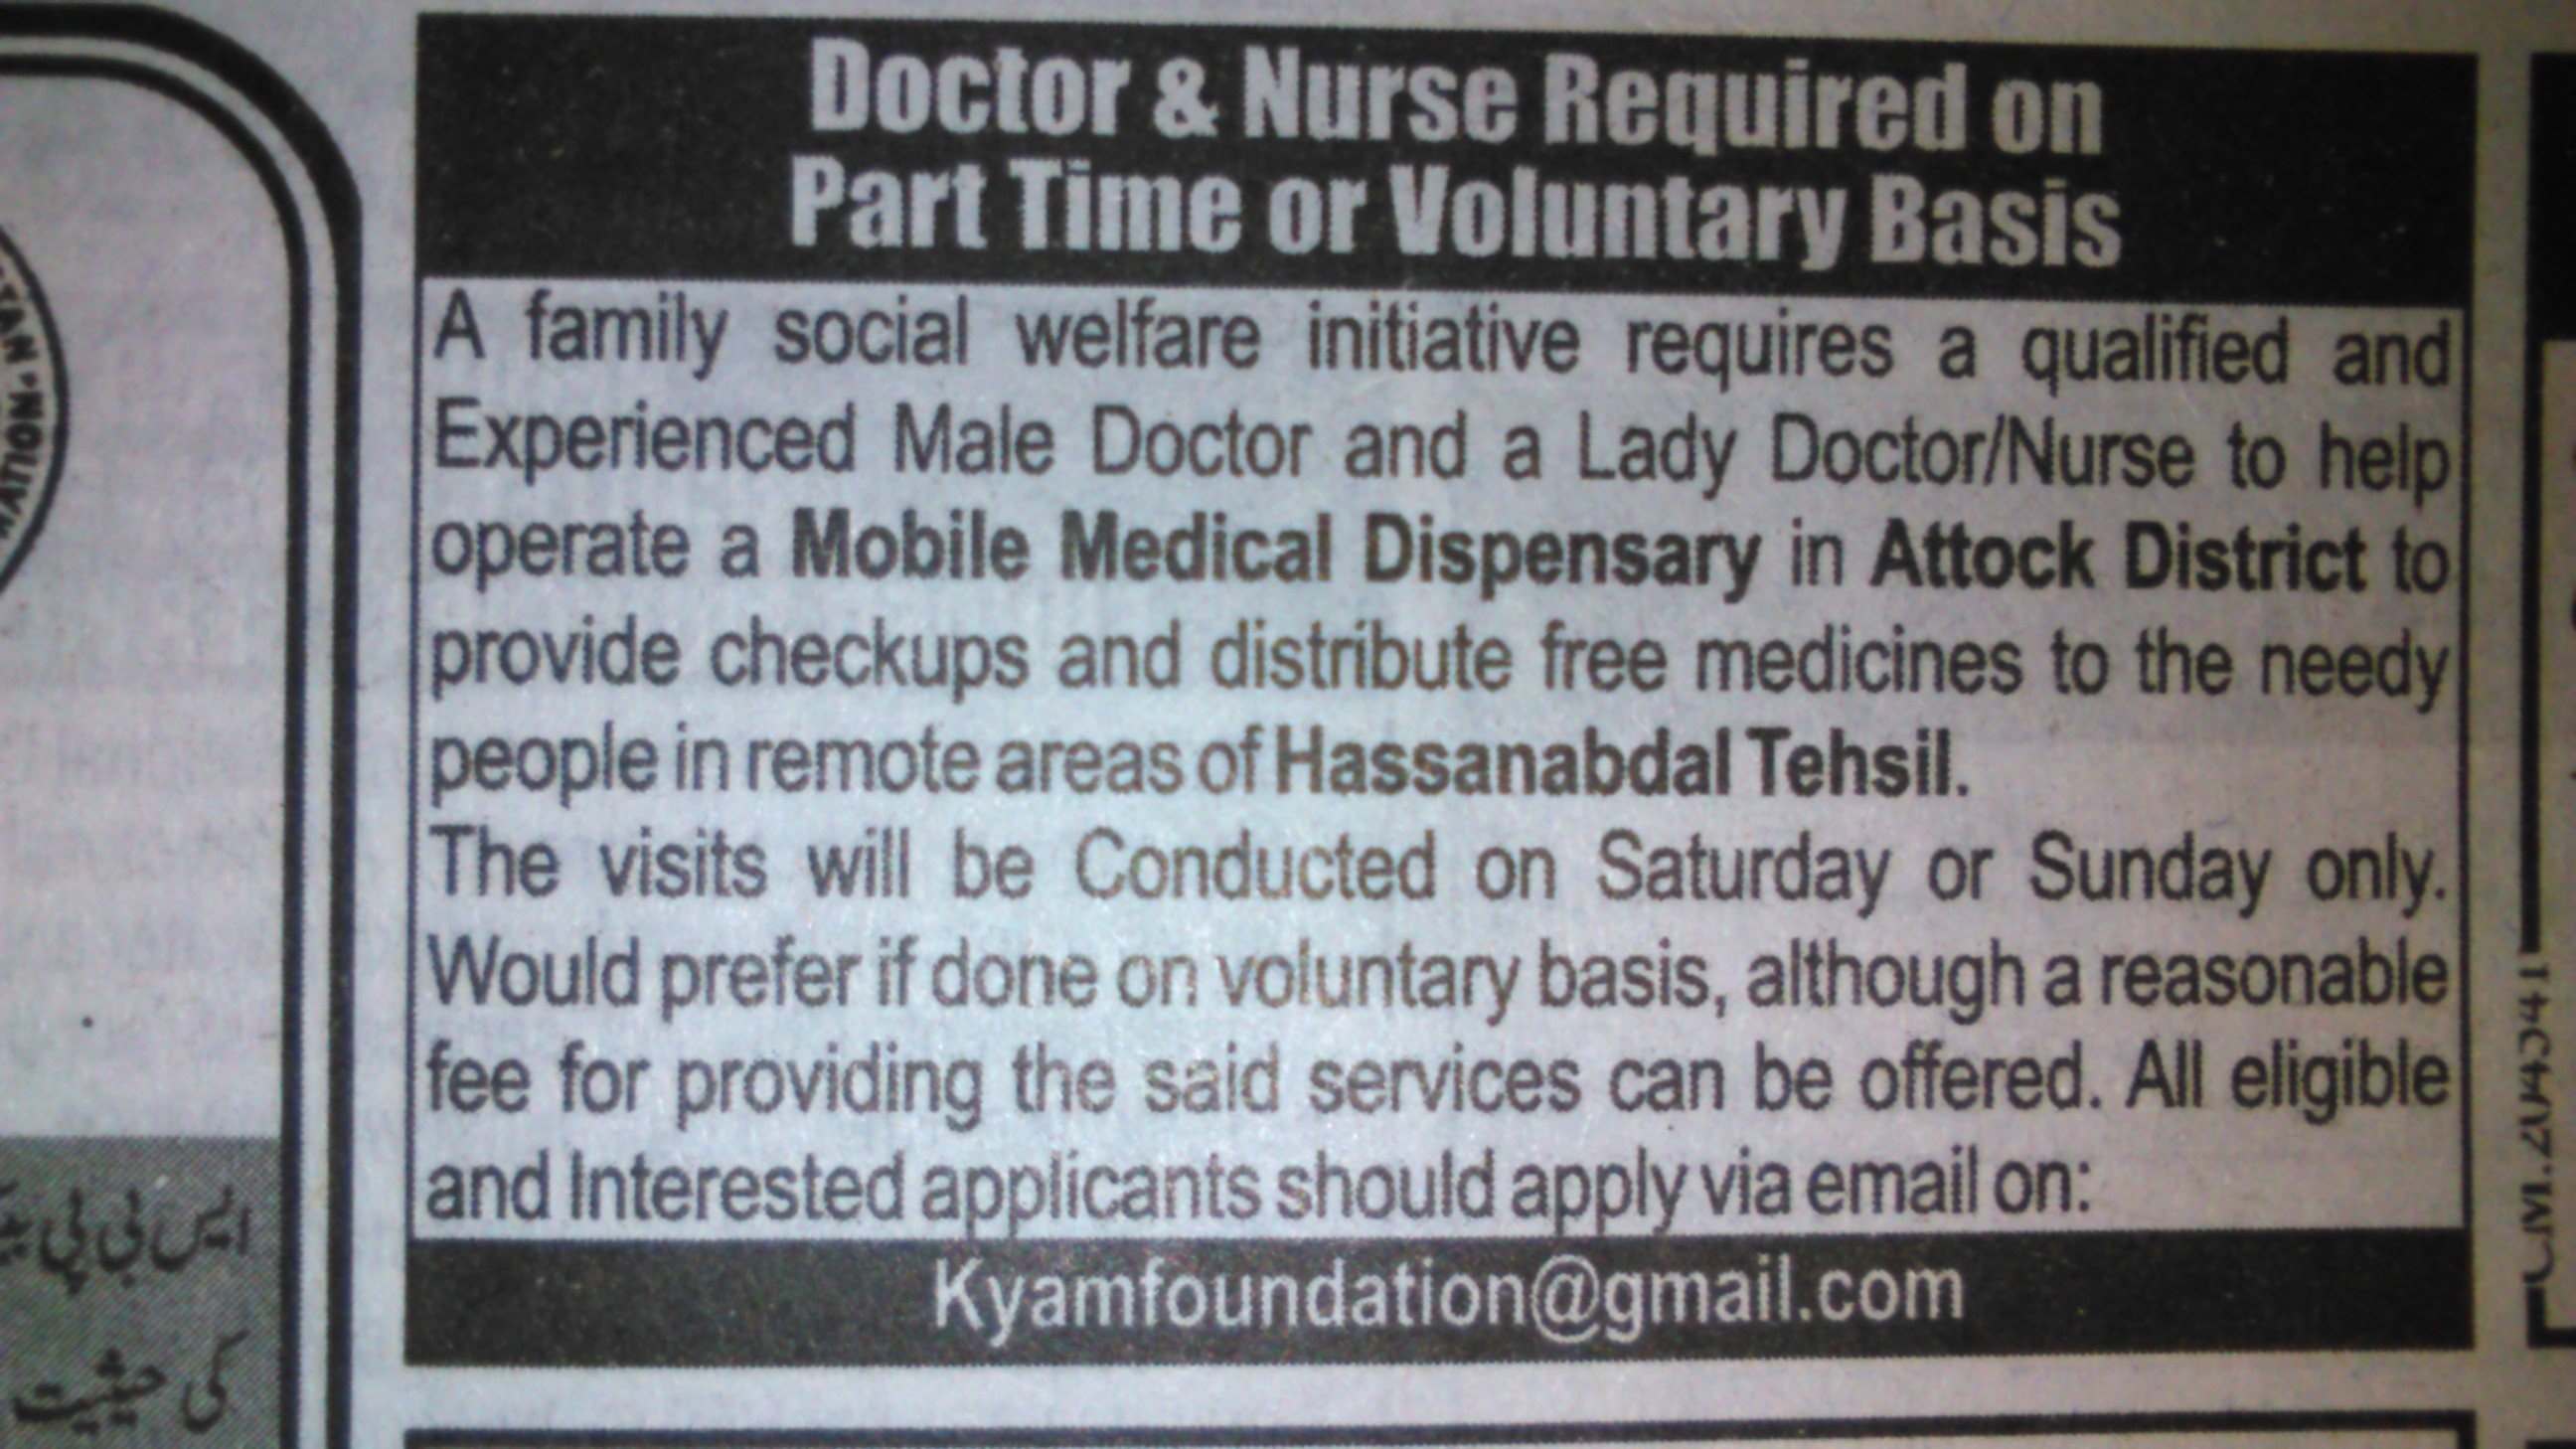 Doctors and Nurses Required for Part Time or Voluntary Basis